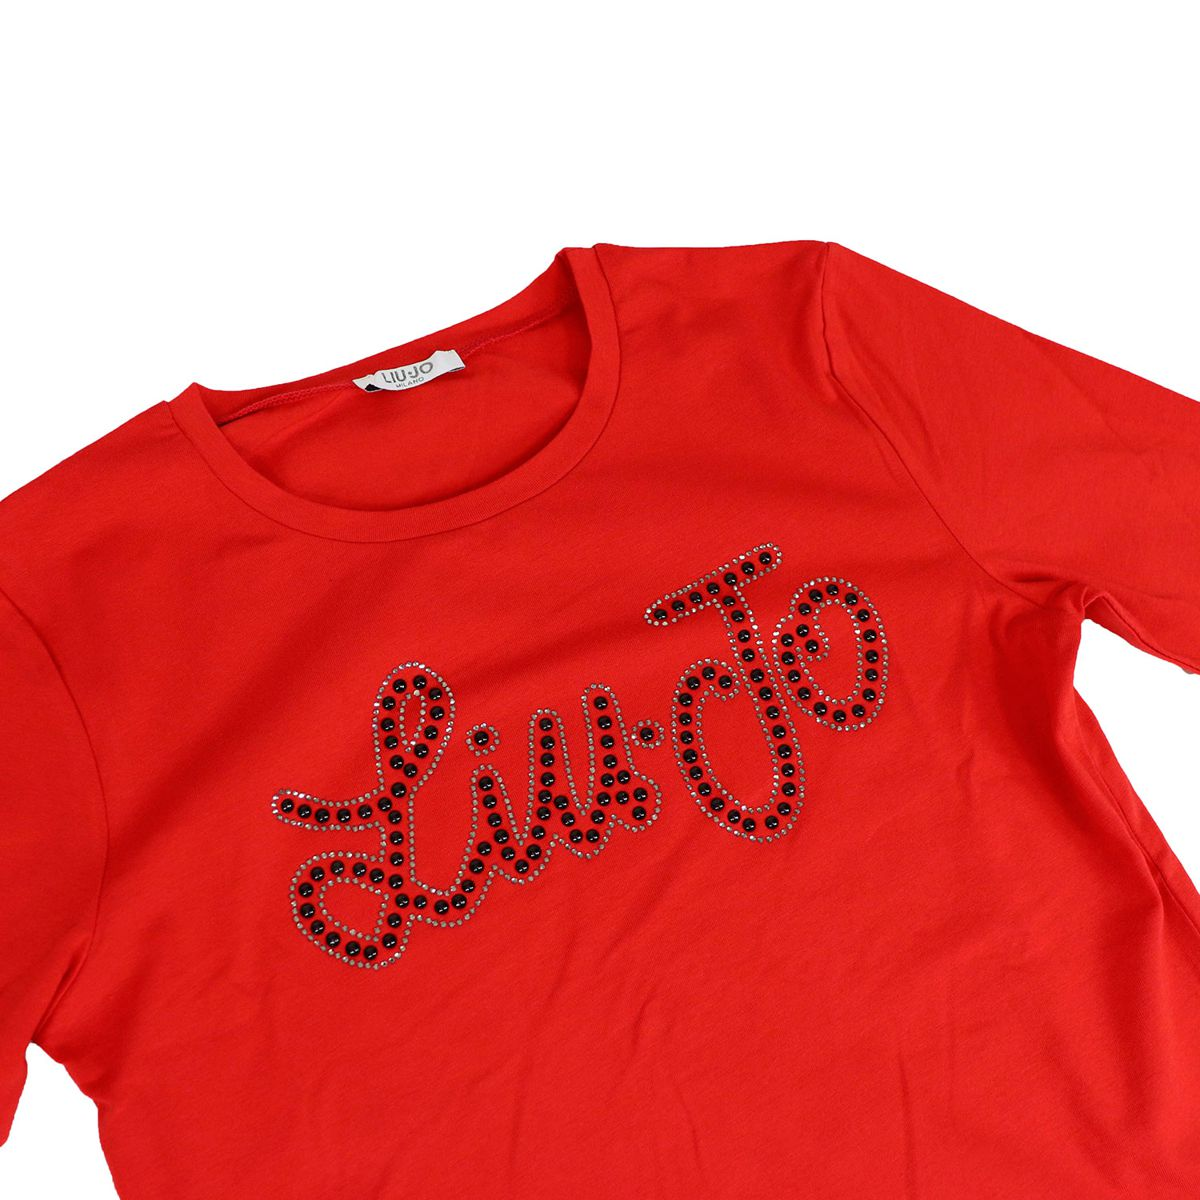 Cotton crew neck sweater with studded logo Red Liu Jo